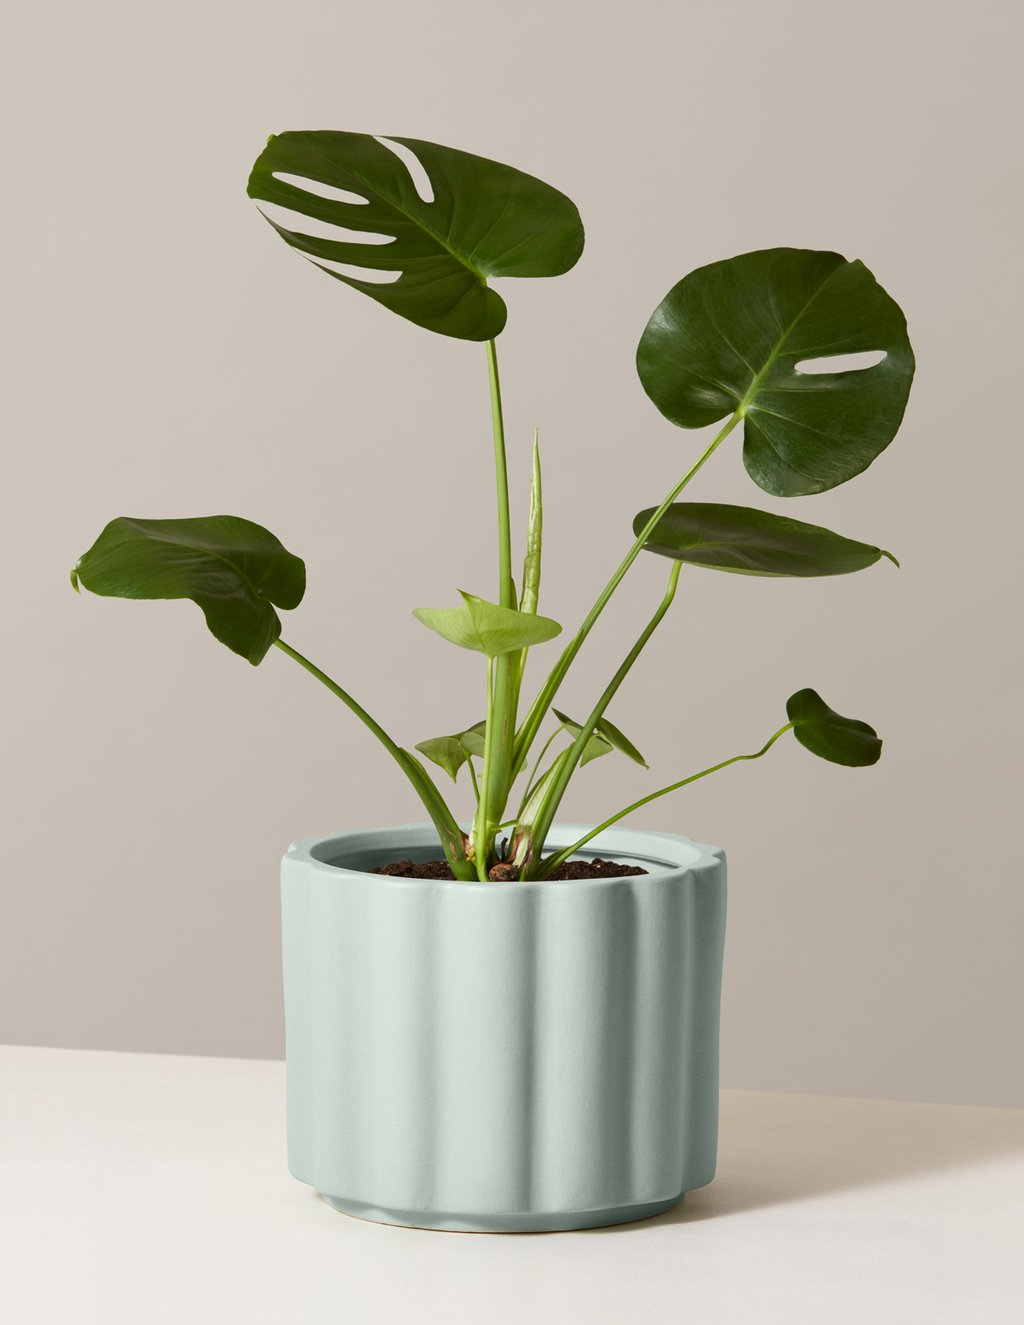 Big Leaf Houseplants To Plant Indoors Apartment Therapy